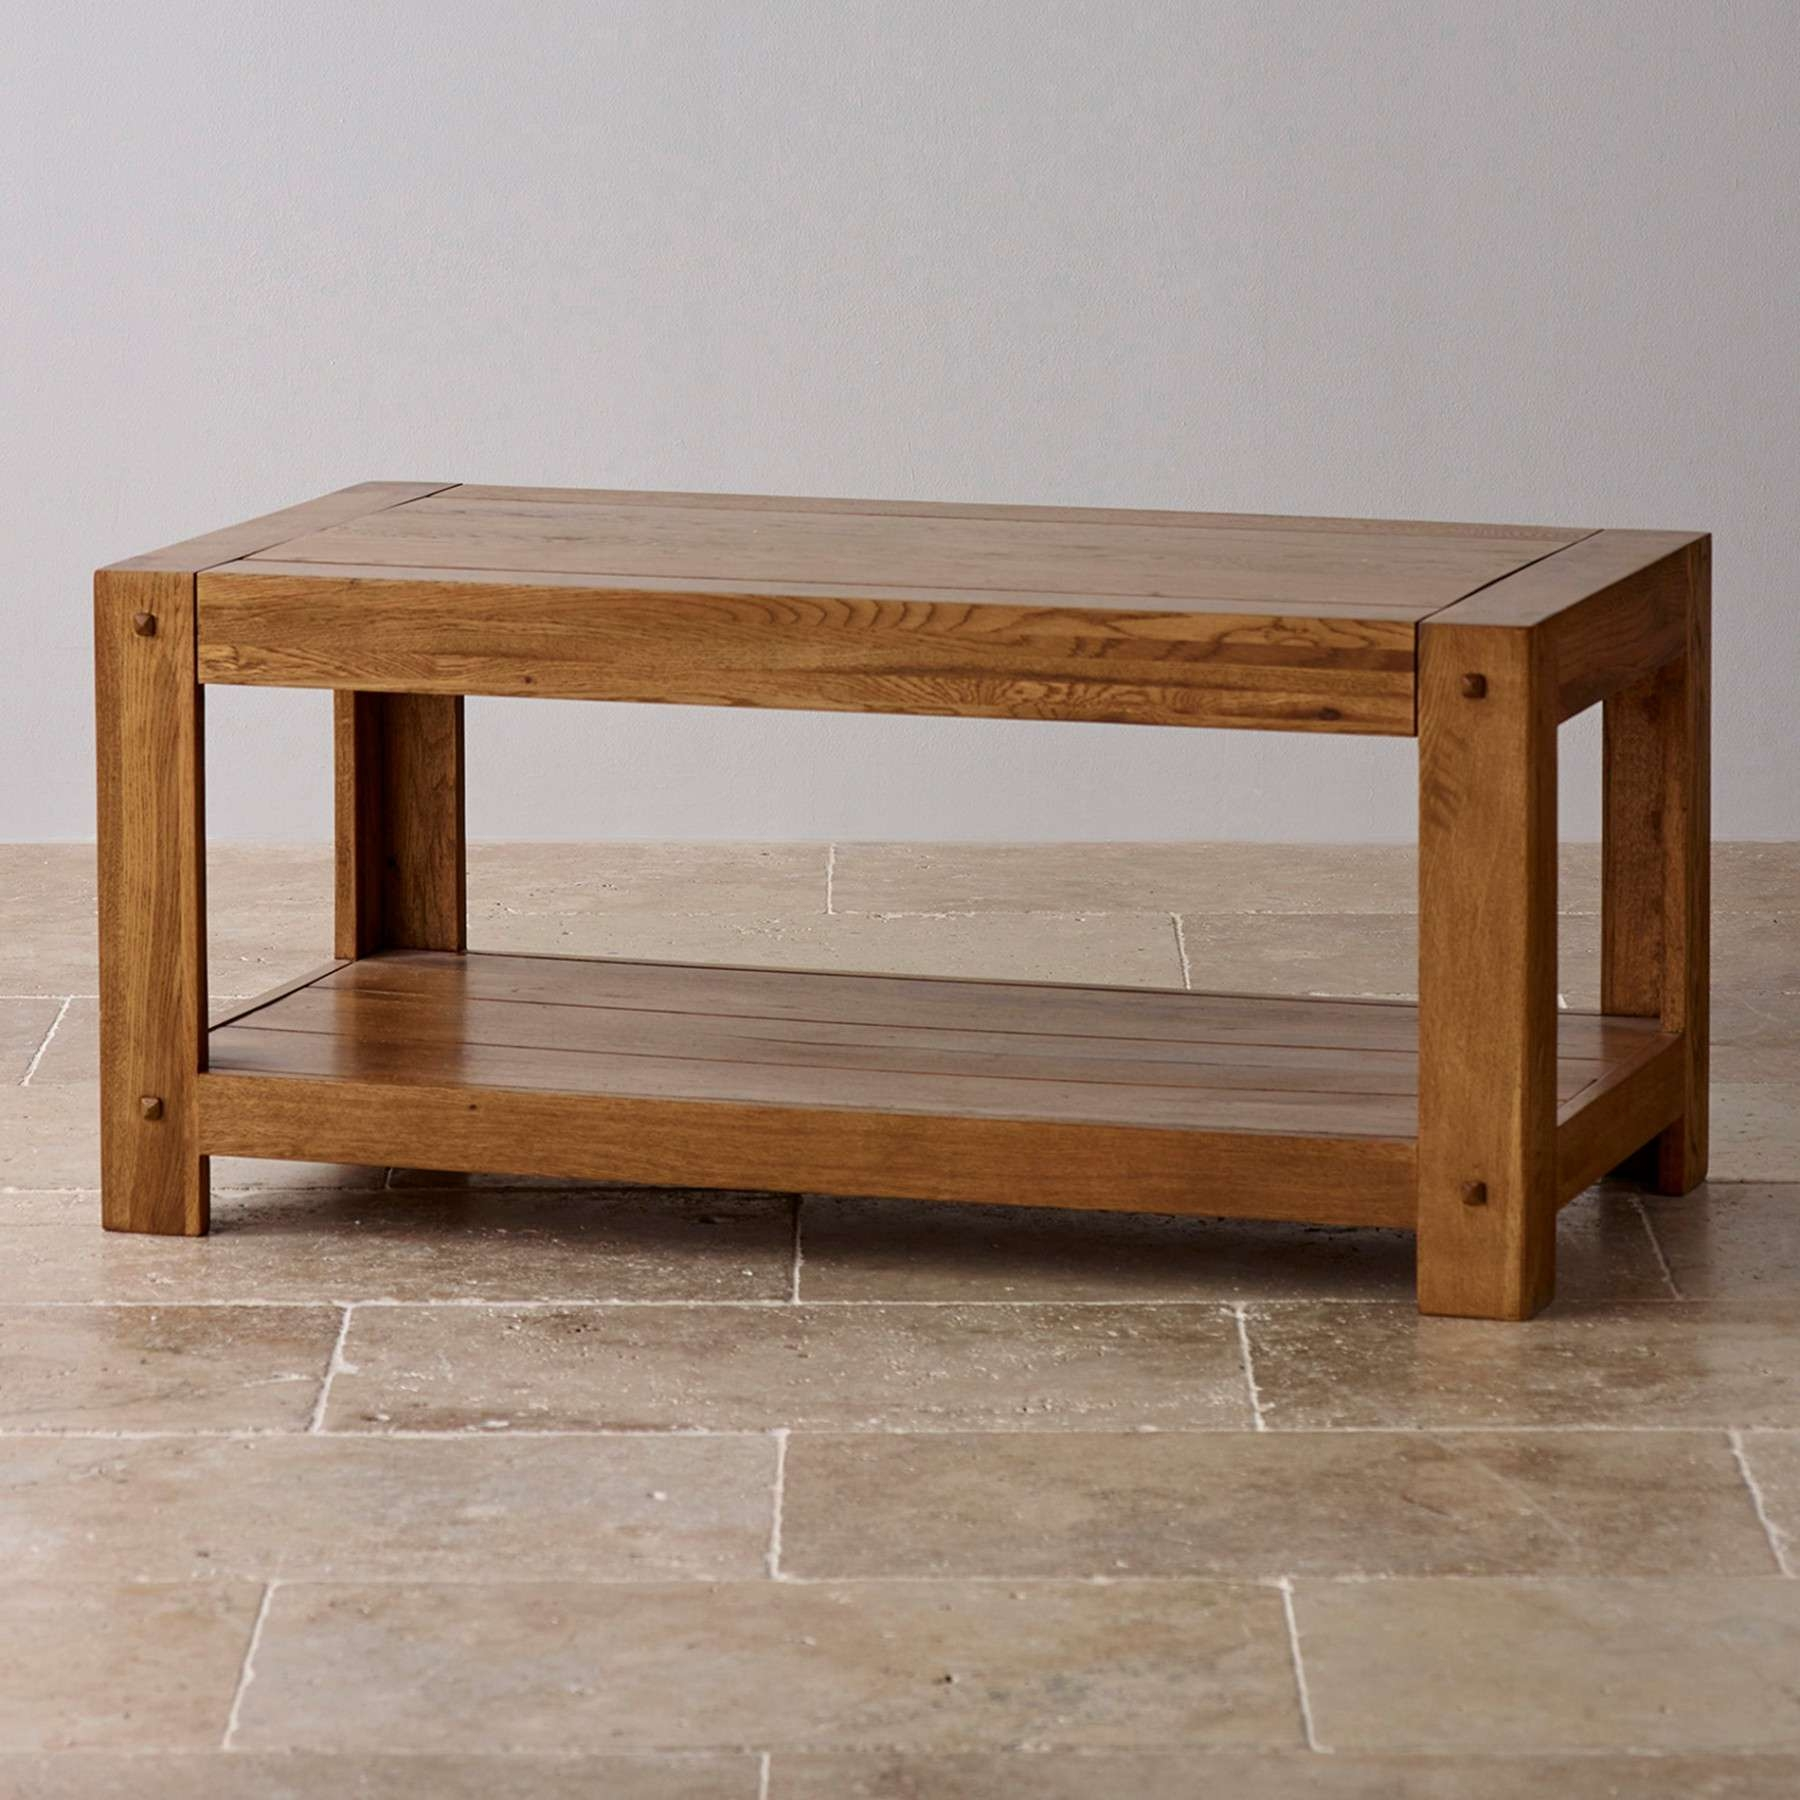 Quercus Rustic Solid Oak Coffee Table Oak Furniture Land Pertaining To Most Popular Solid Oak Coffee Tables (View 15 of 20)